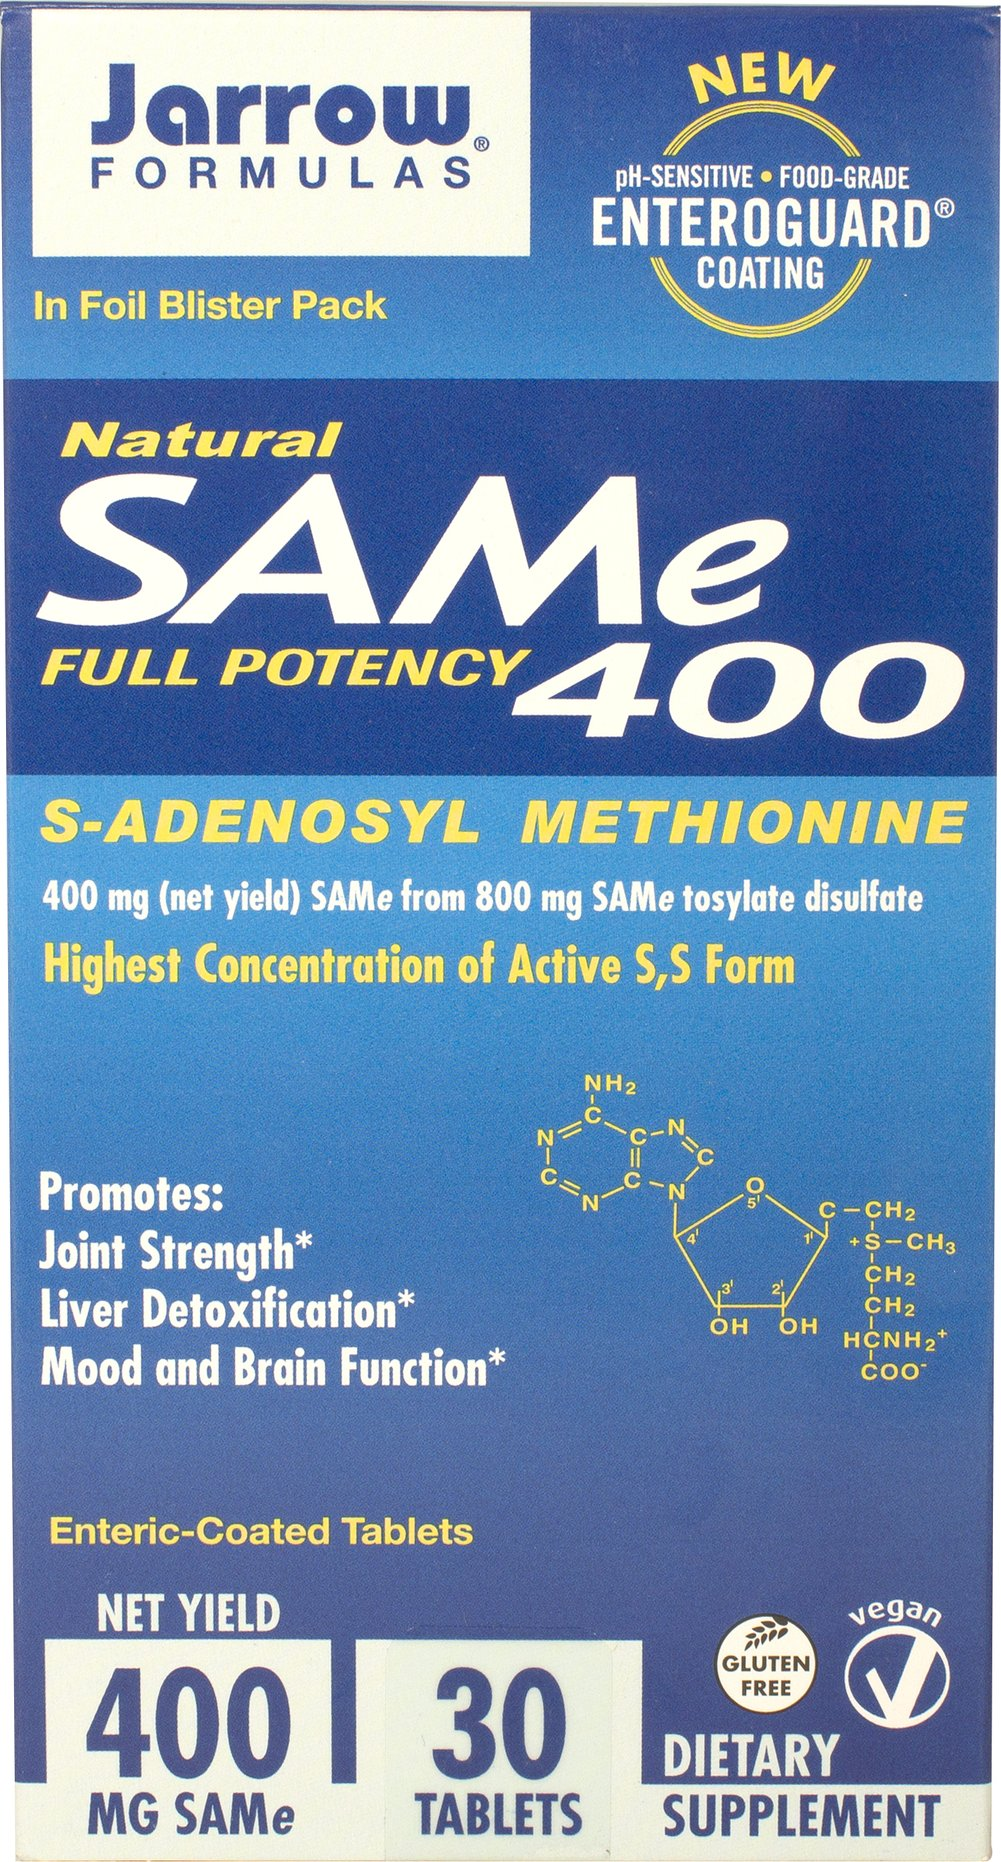 SAM-e 400 mg <p><strong>From the Manufacturer's Label: </strong></p><p>Jarrow Formulas® SAM-e 400 provides a full 400 mg SAM-e (net yield) from 800 mg of SAM-e tosylate disulfate.  SAM-e 400 is manufactured under low temperature and low humidity and is enteric-coated to ensure a biologically active product. </p><p>Found in all living cells, SAM-e is a metabolite of methionine (an essential amino acid) SAM-e is a chiral molecule and consists of two f